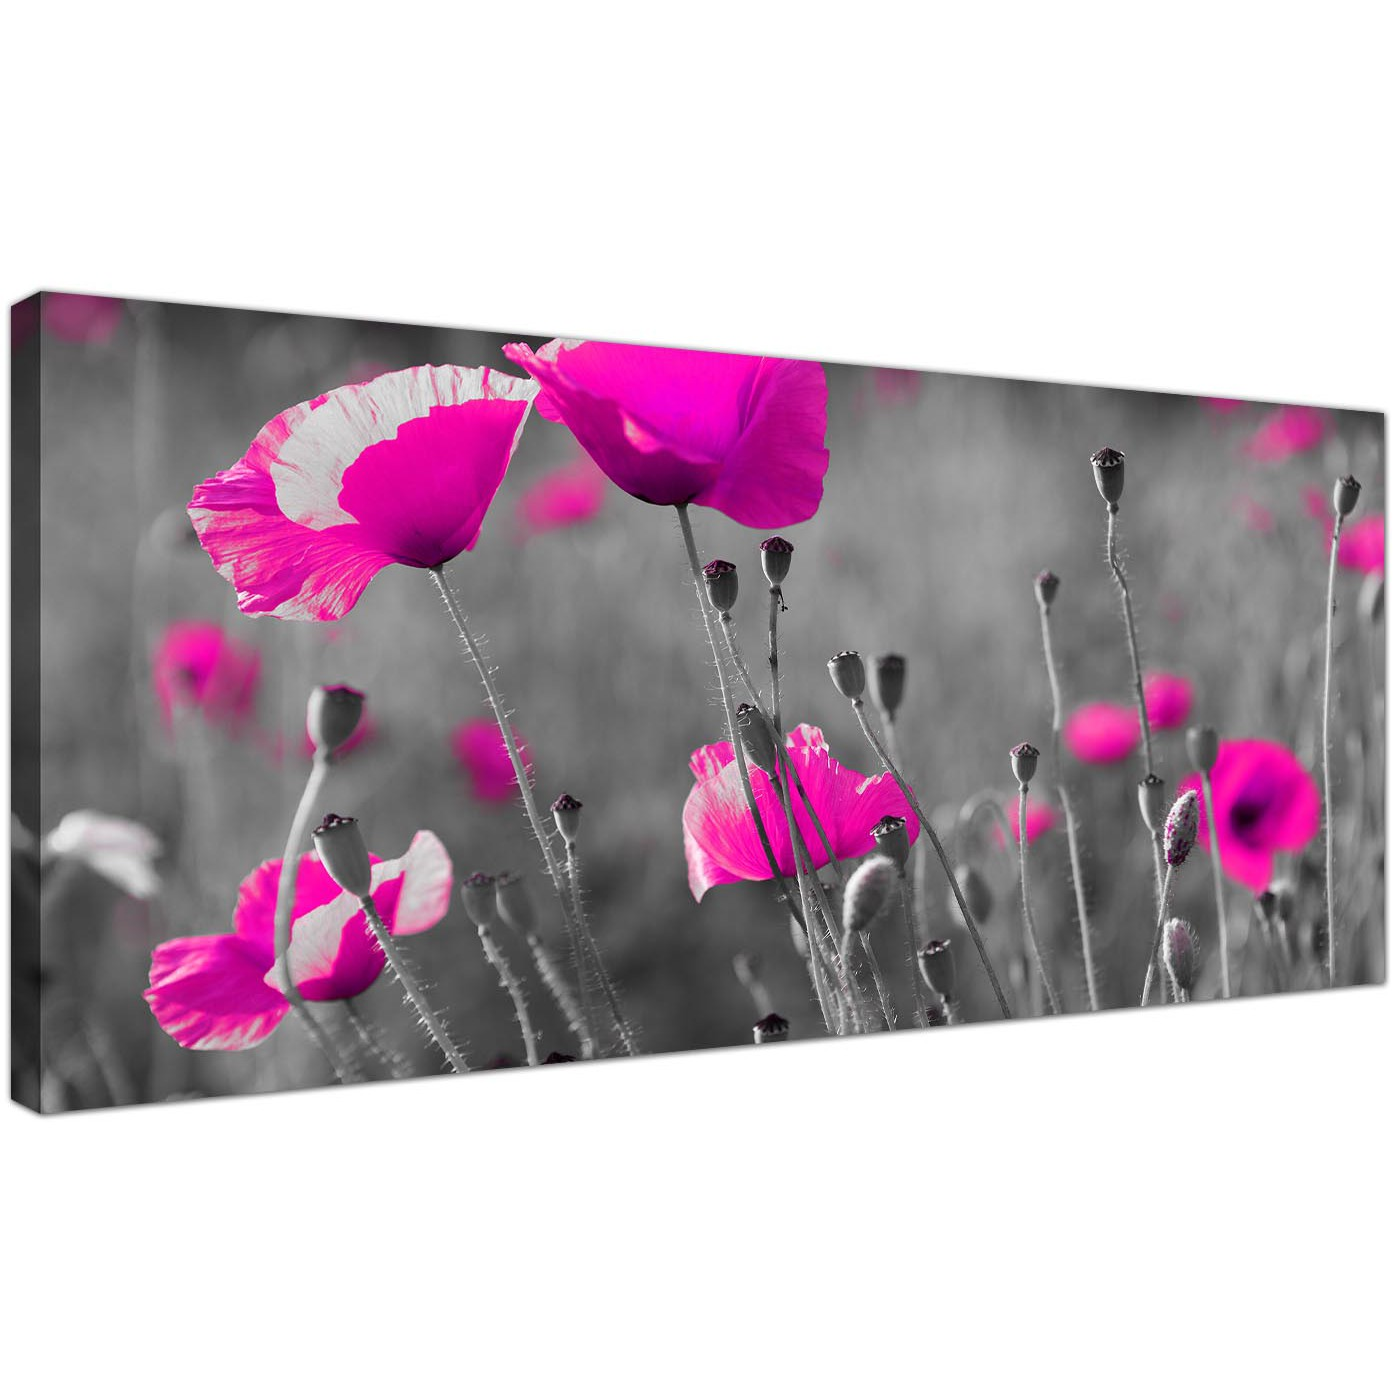 Cheap Black And White Canvas Art Of Pink Poppies